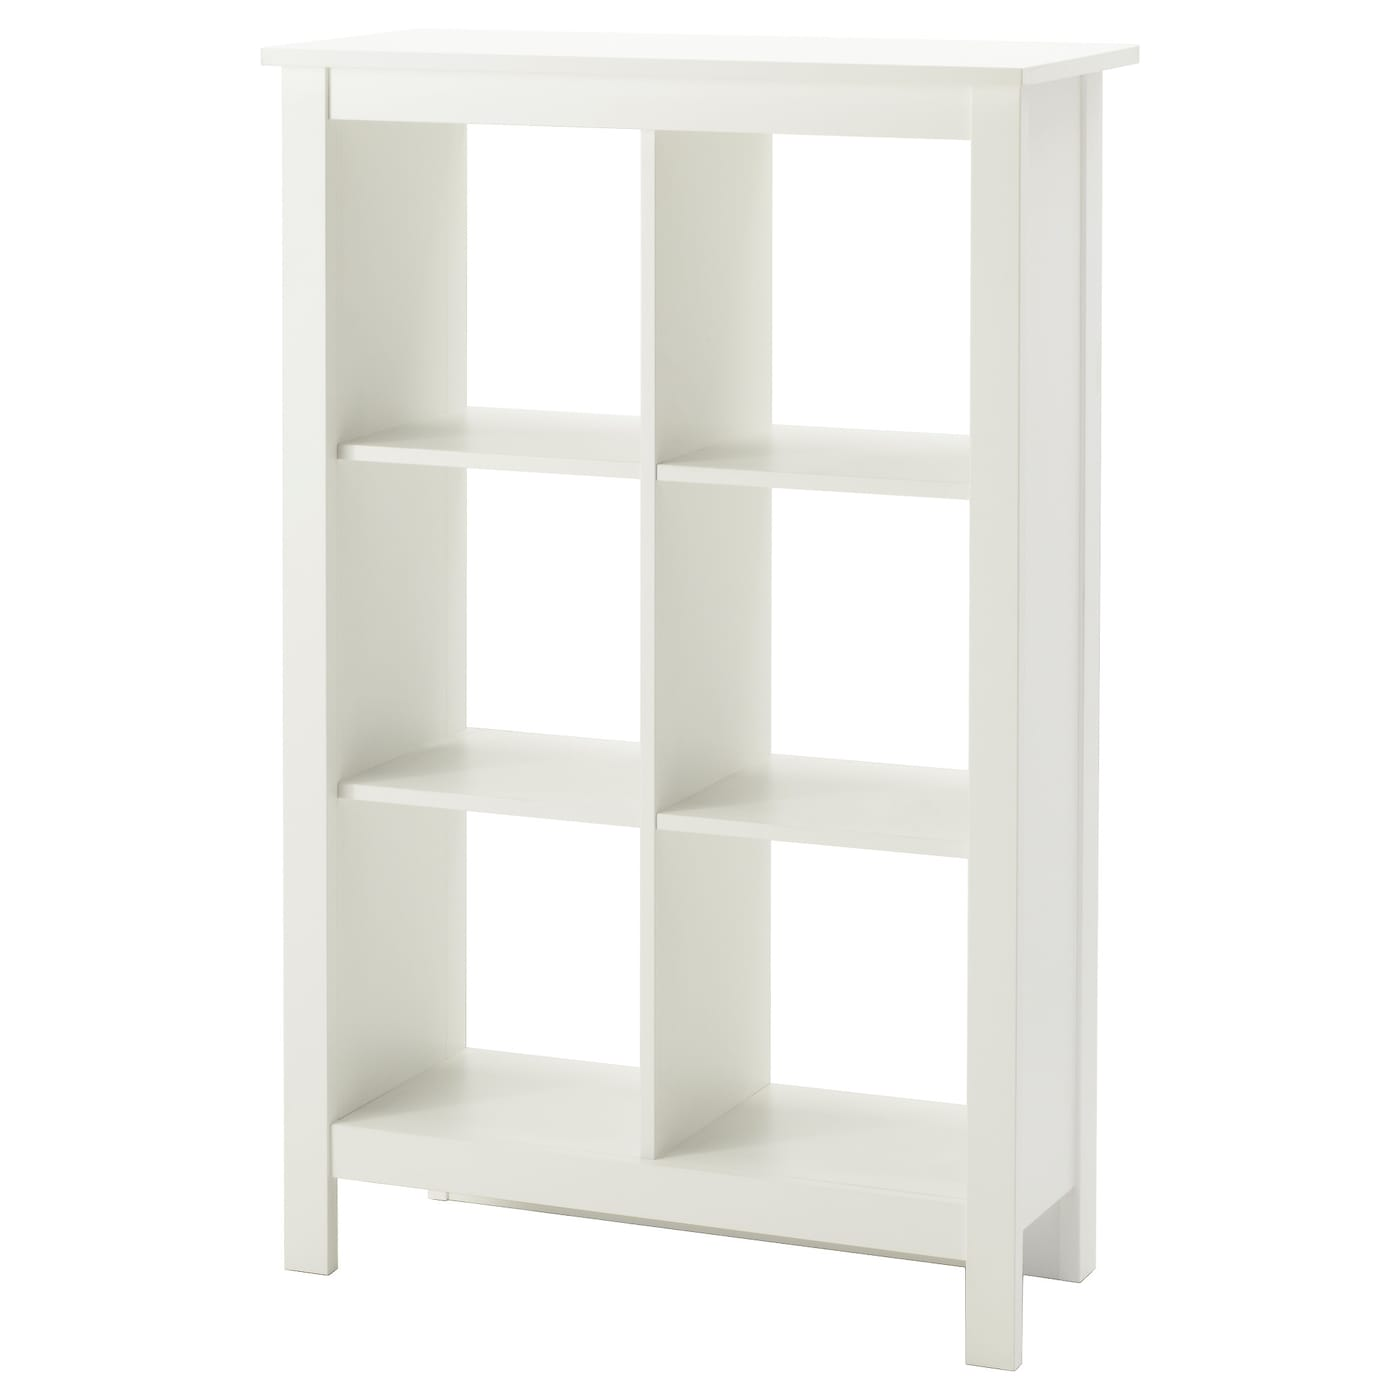 Great IKEA TOMNÄS Shelving Unit Easy To Place Anywhere In Your Home.